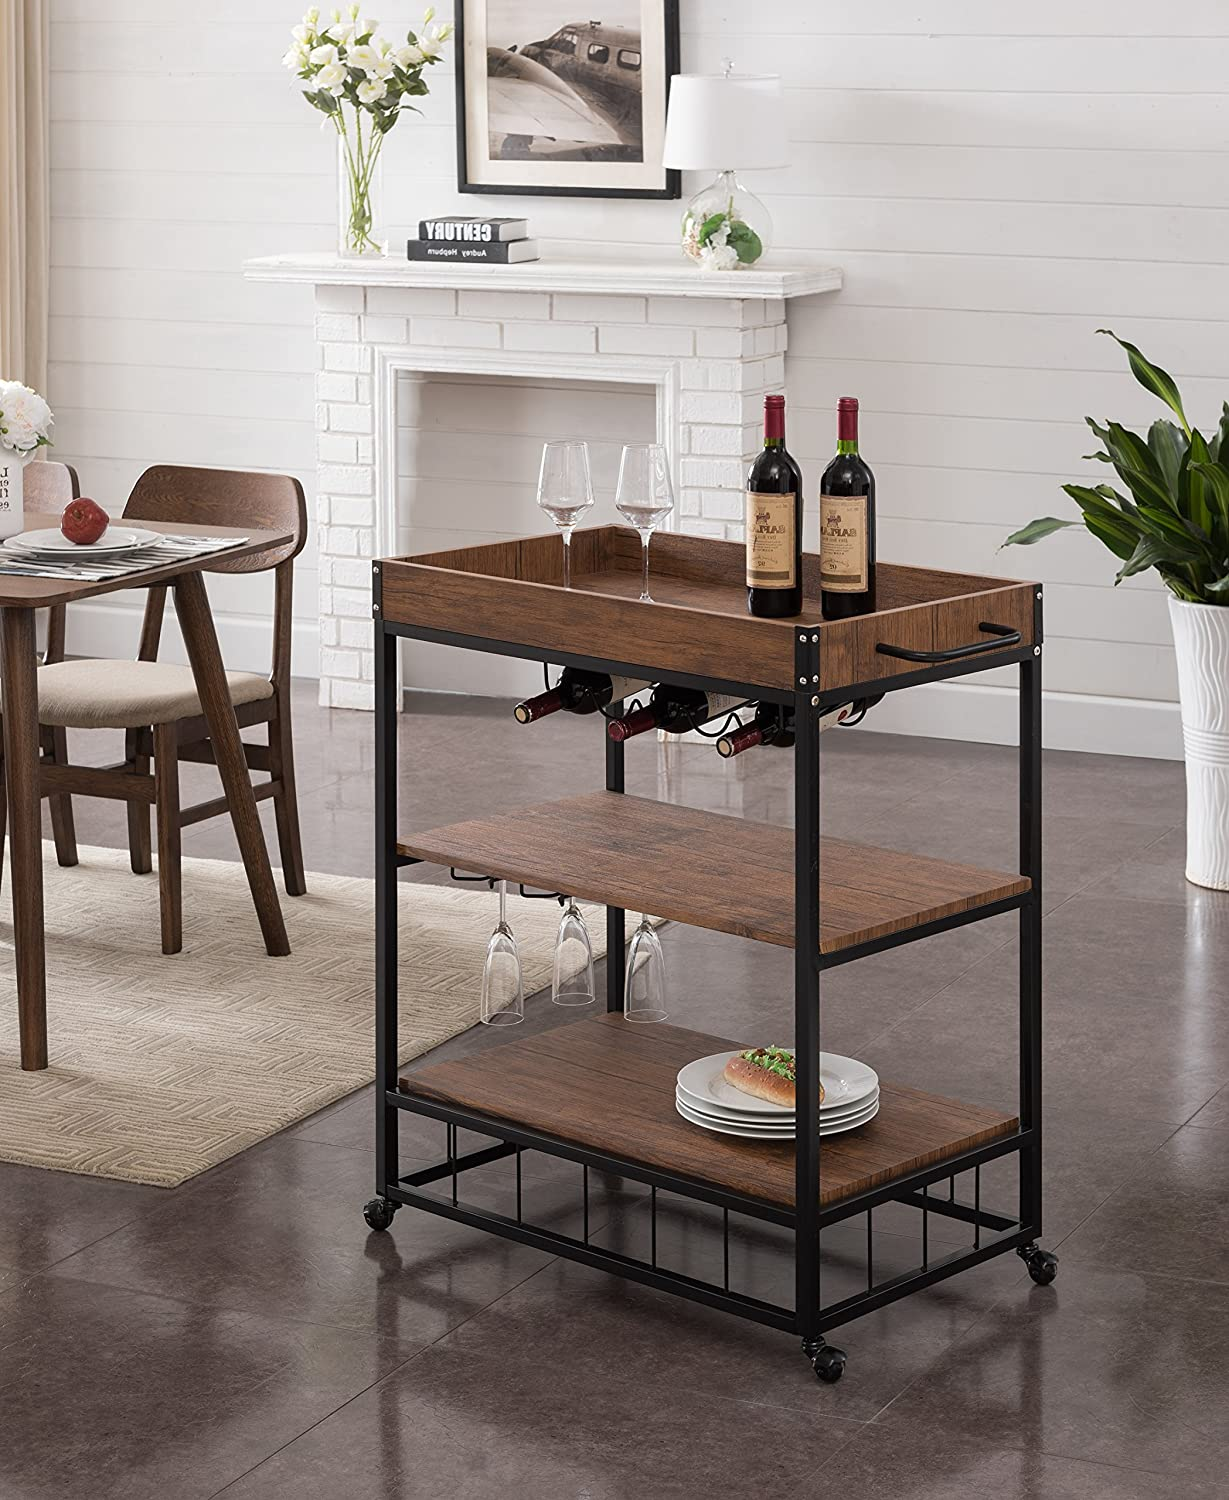 Heavy-Duty Vintage Brown Black Metal Industrial Style 3-tier Serving Wine Tea Dining Kitchen Cart with Bottle Holder and Tray Top